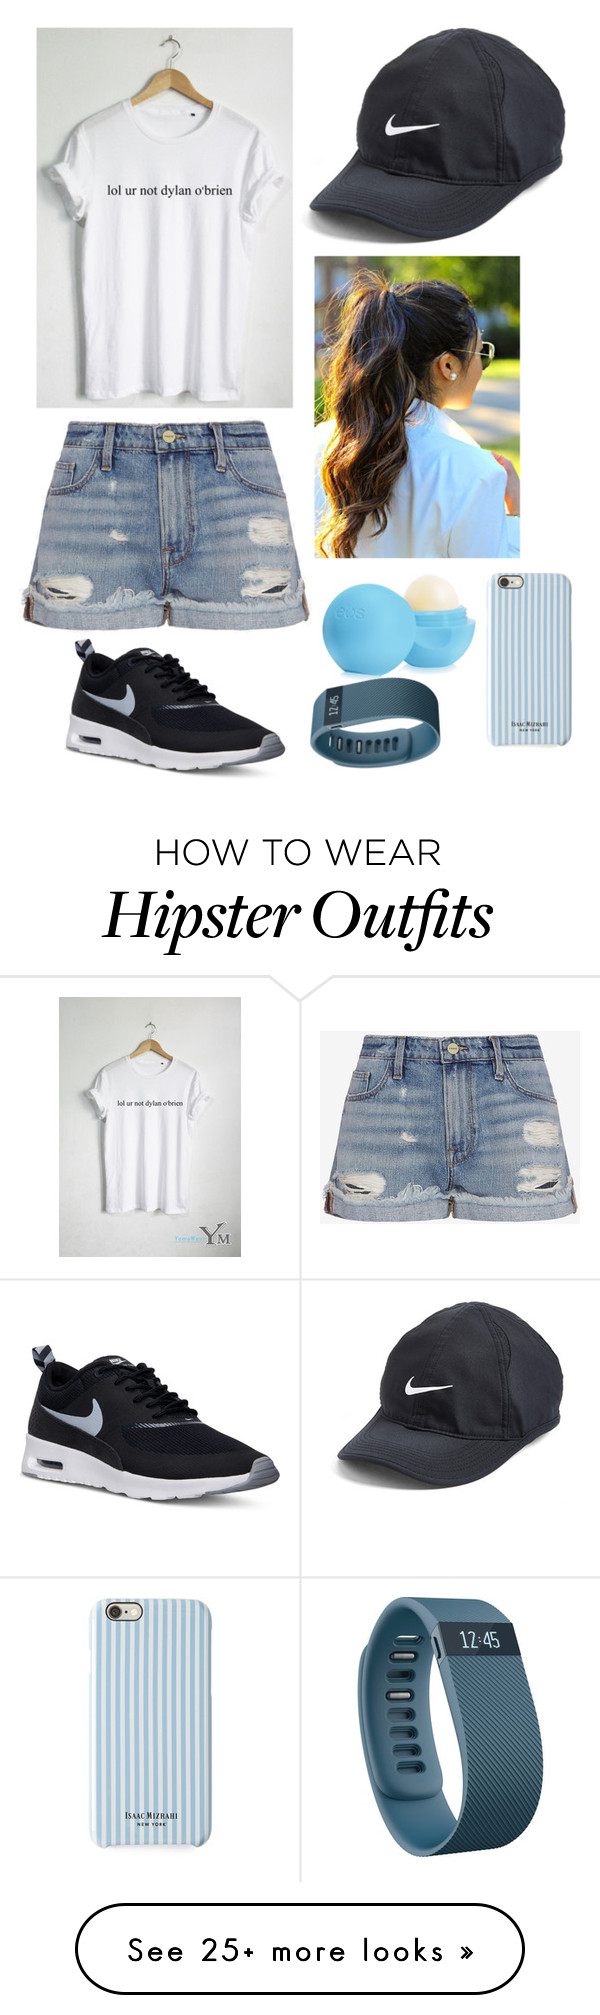 """""""Untitled #129"""" by chameleon141 on Polyvore featuring Frame Denim, NIKE, Eos, Isaac Mizrahi, Fitbit, women's clothing, women, female, woman and misses"""